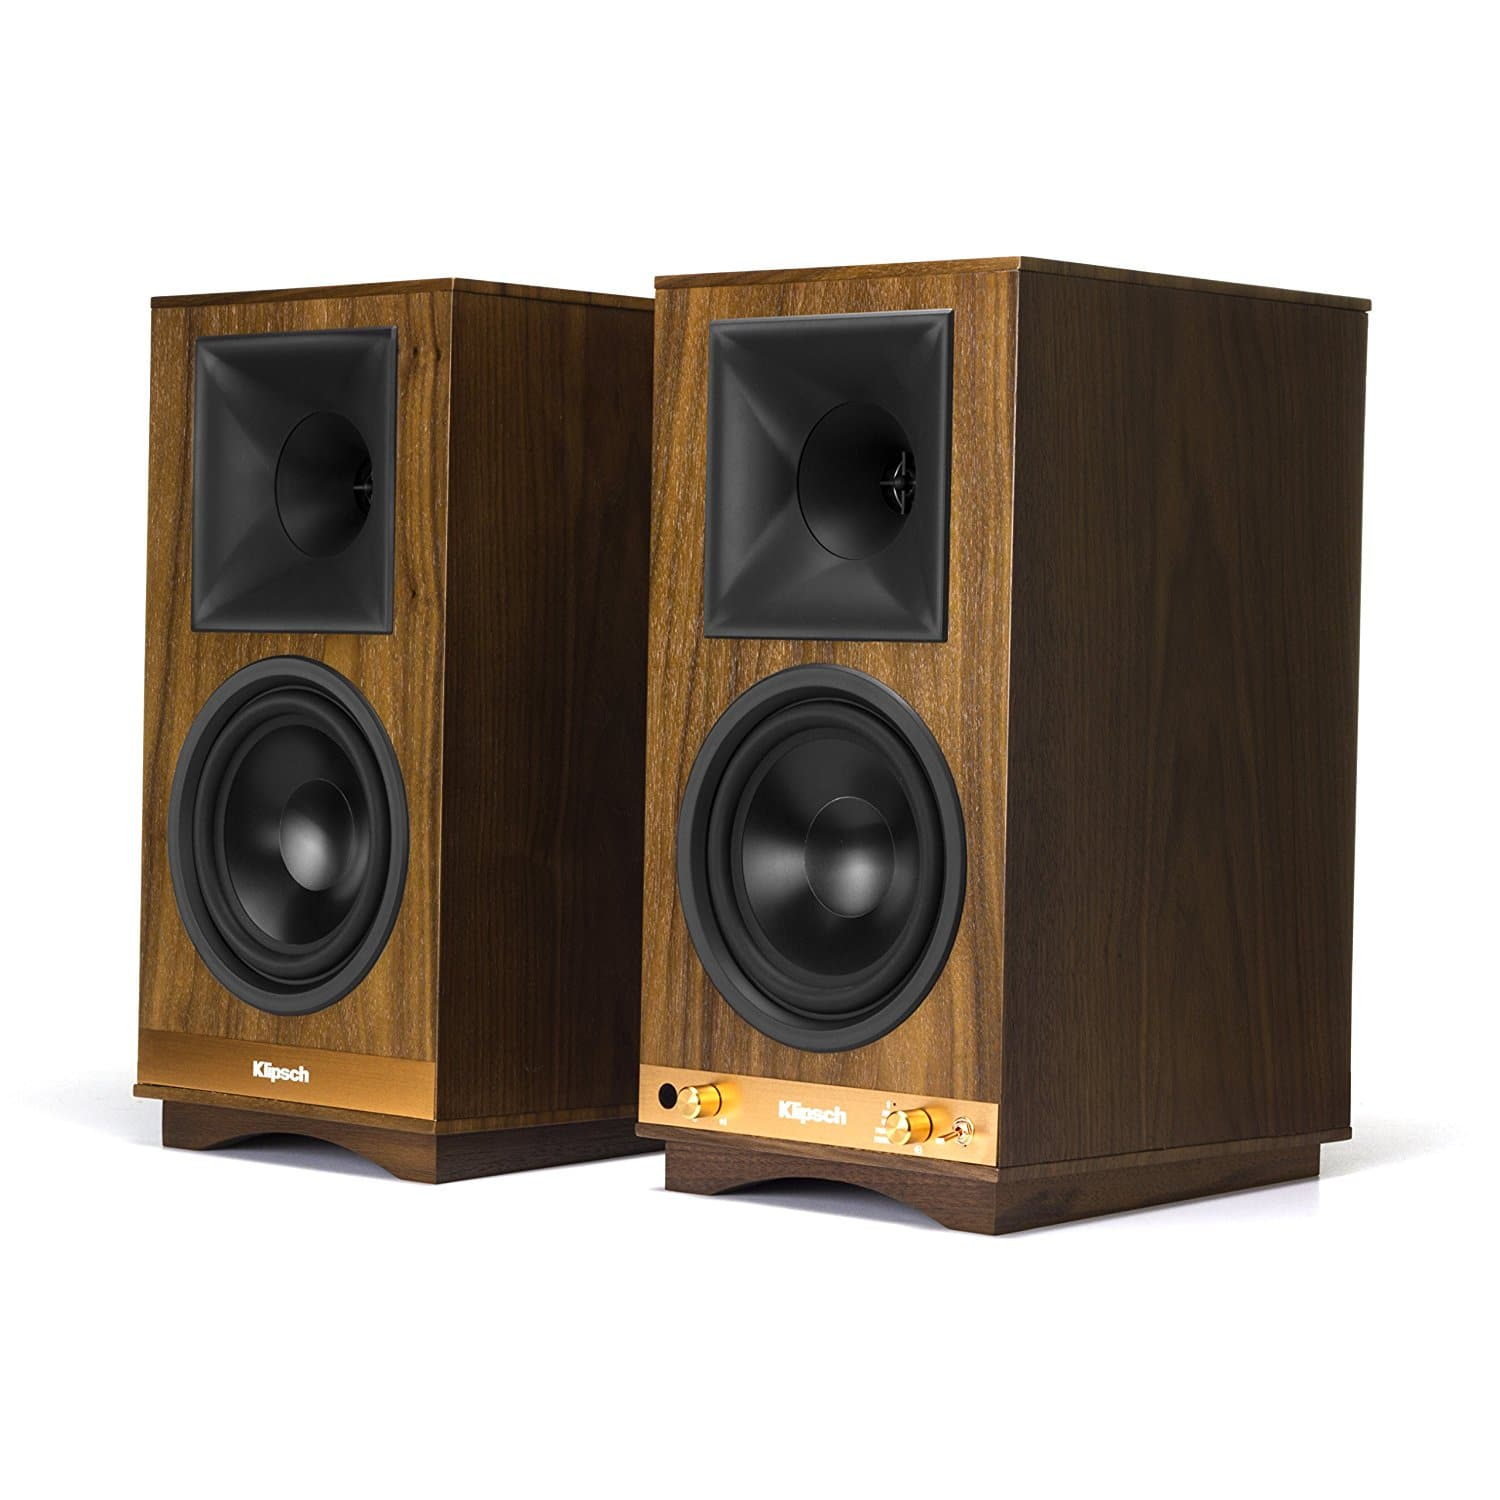 Klipsch The Sixes - Powered Speakers w/ Dac and Bluetooth (open box) $599 + free shipping